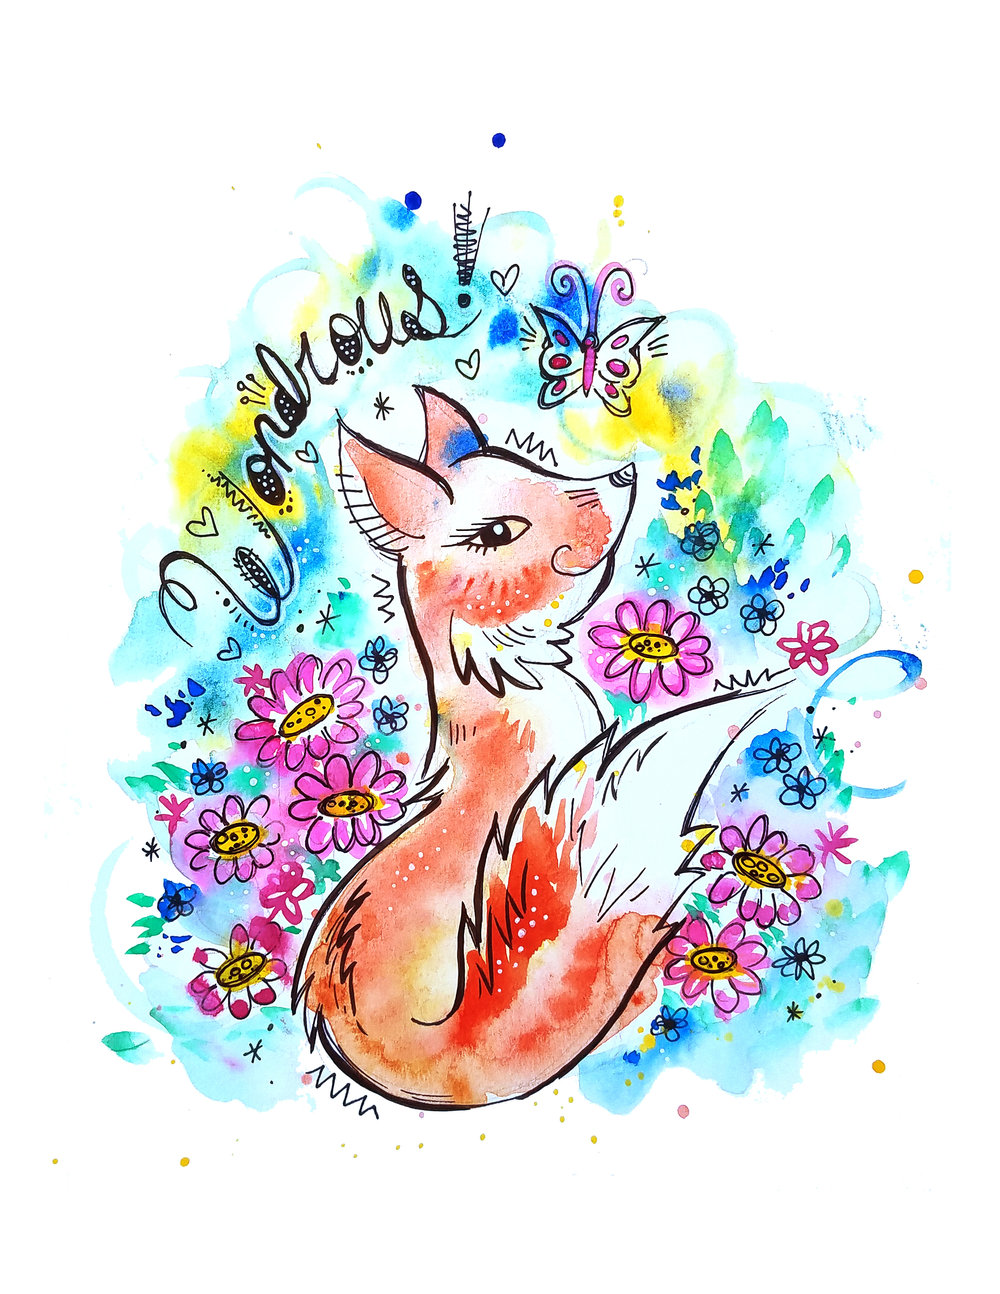 Wondrous fox 8.5x11.jpg